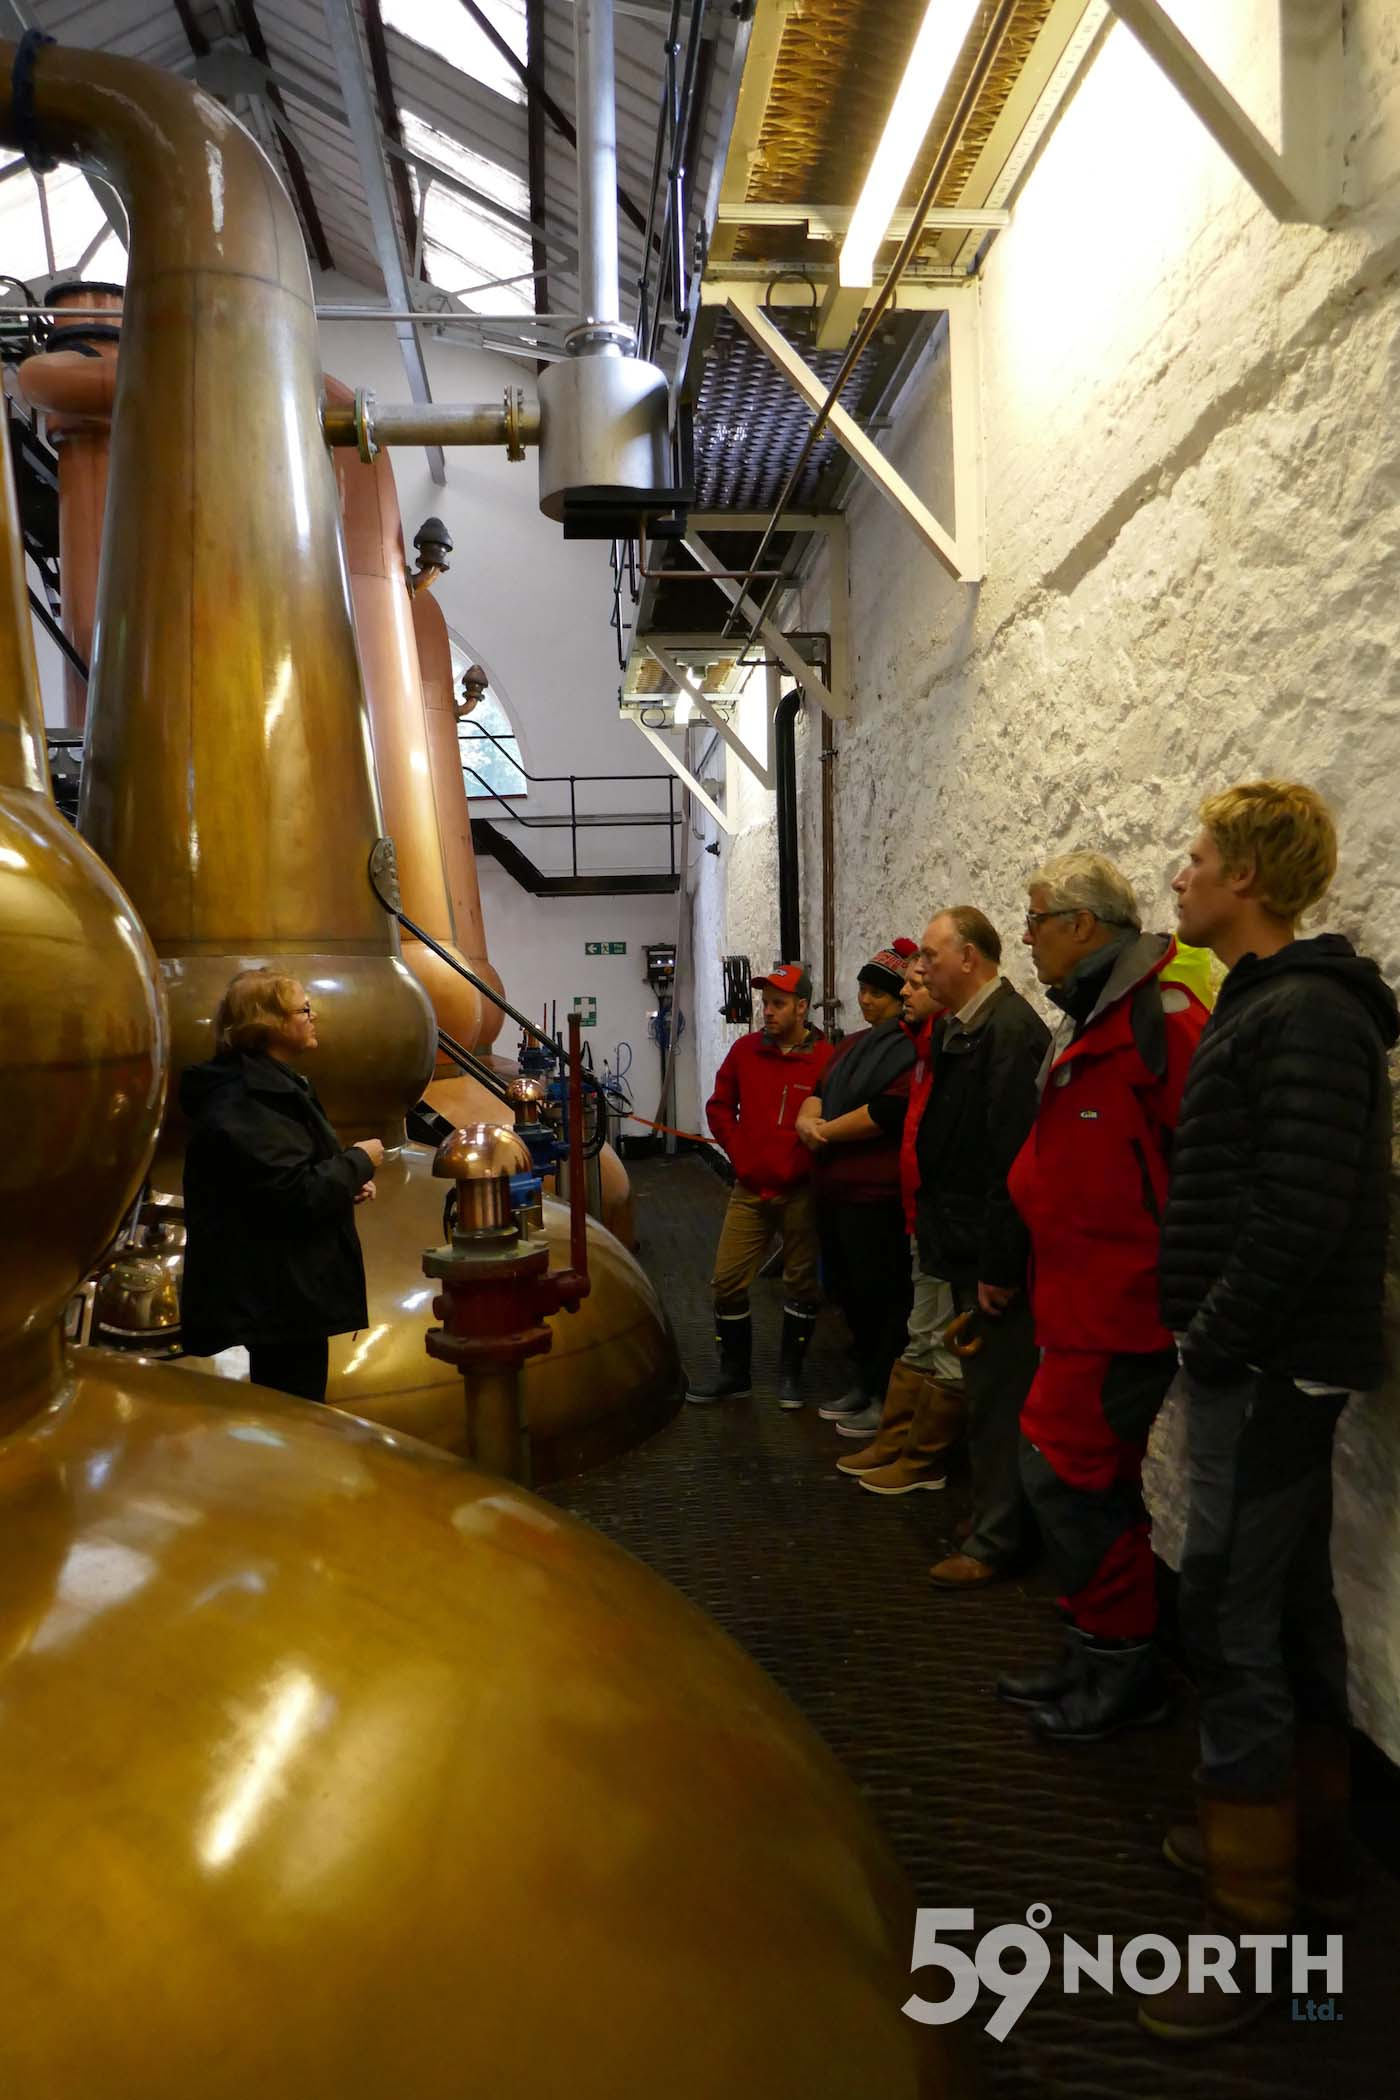 Tour at the Tobermory distillery. Leg 8, 2017: Sweden to Scotland 59-north.com